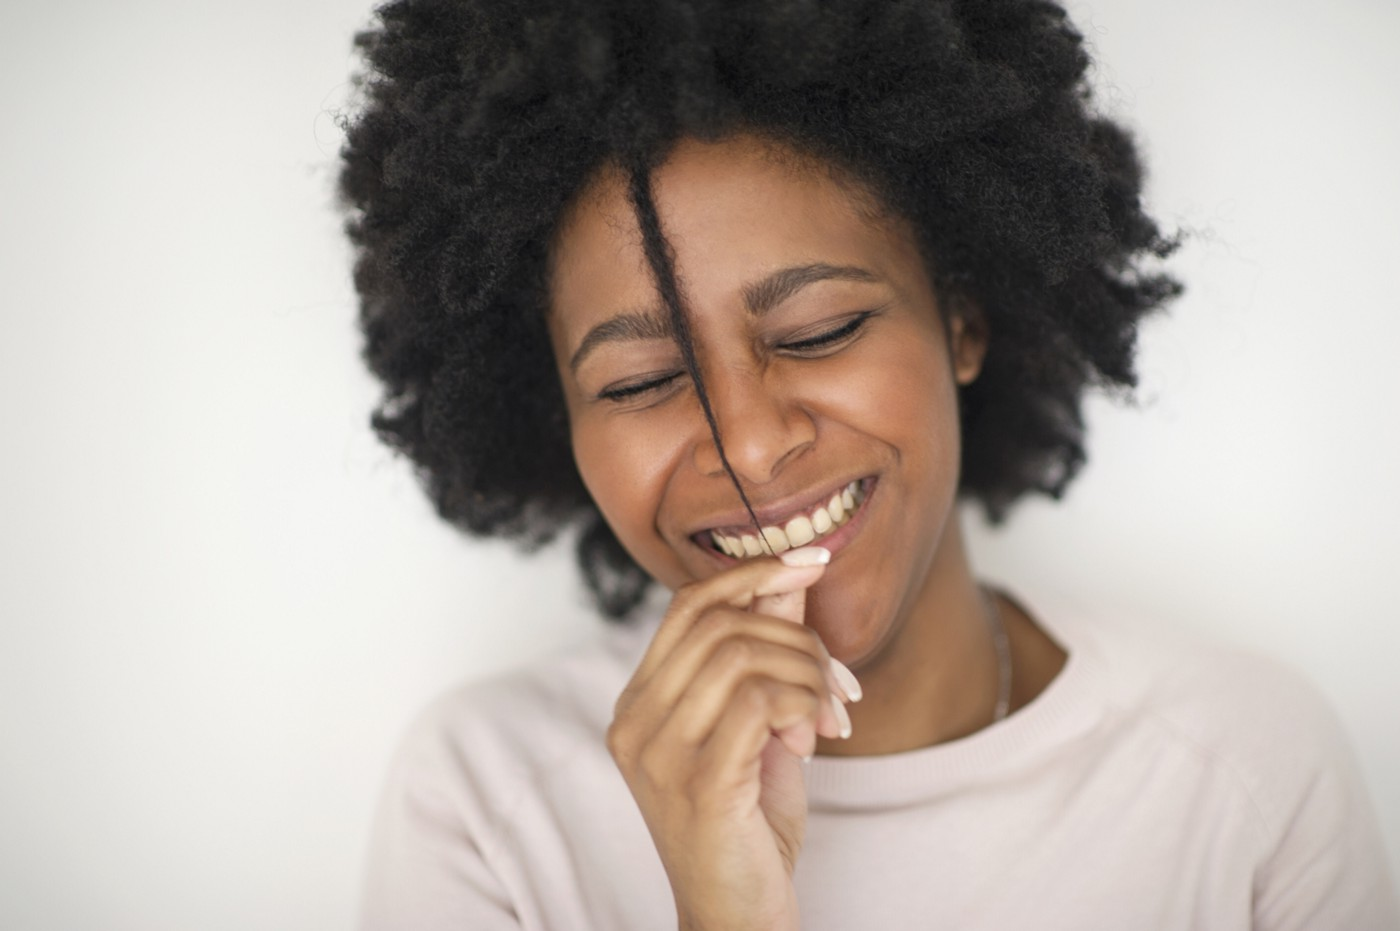 Smiling Black woman with natural hair.